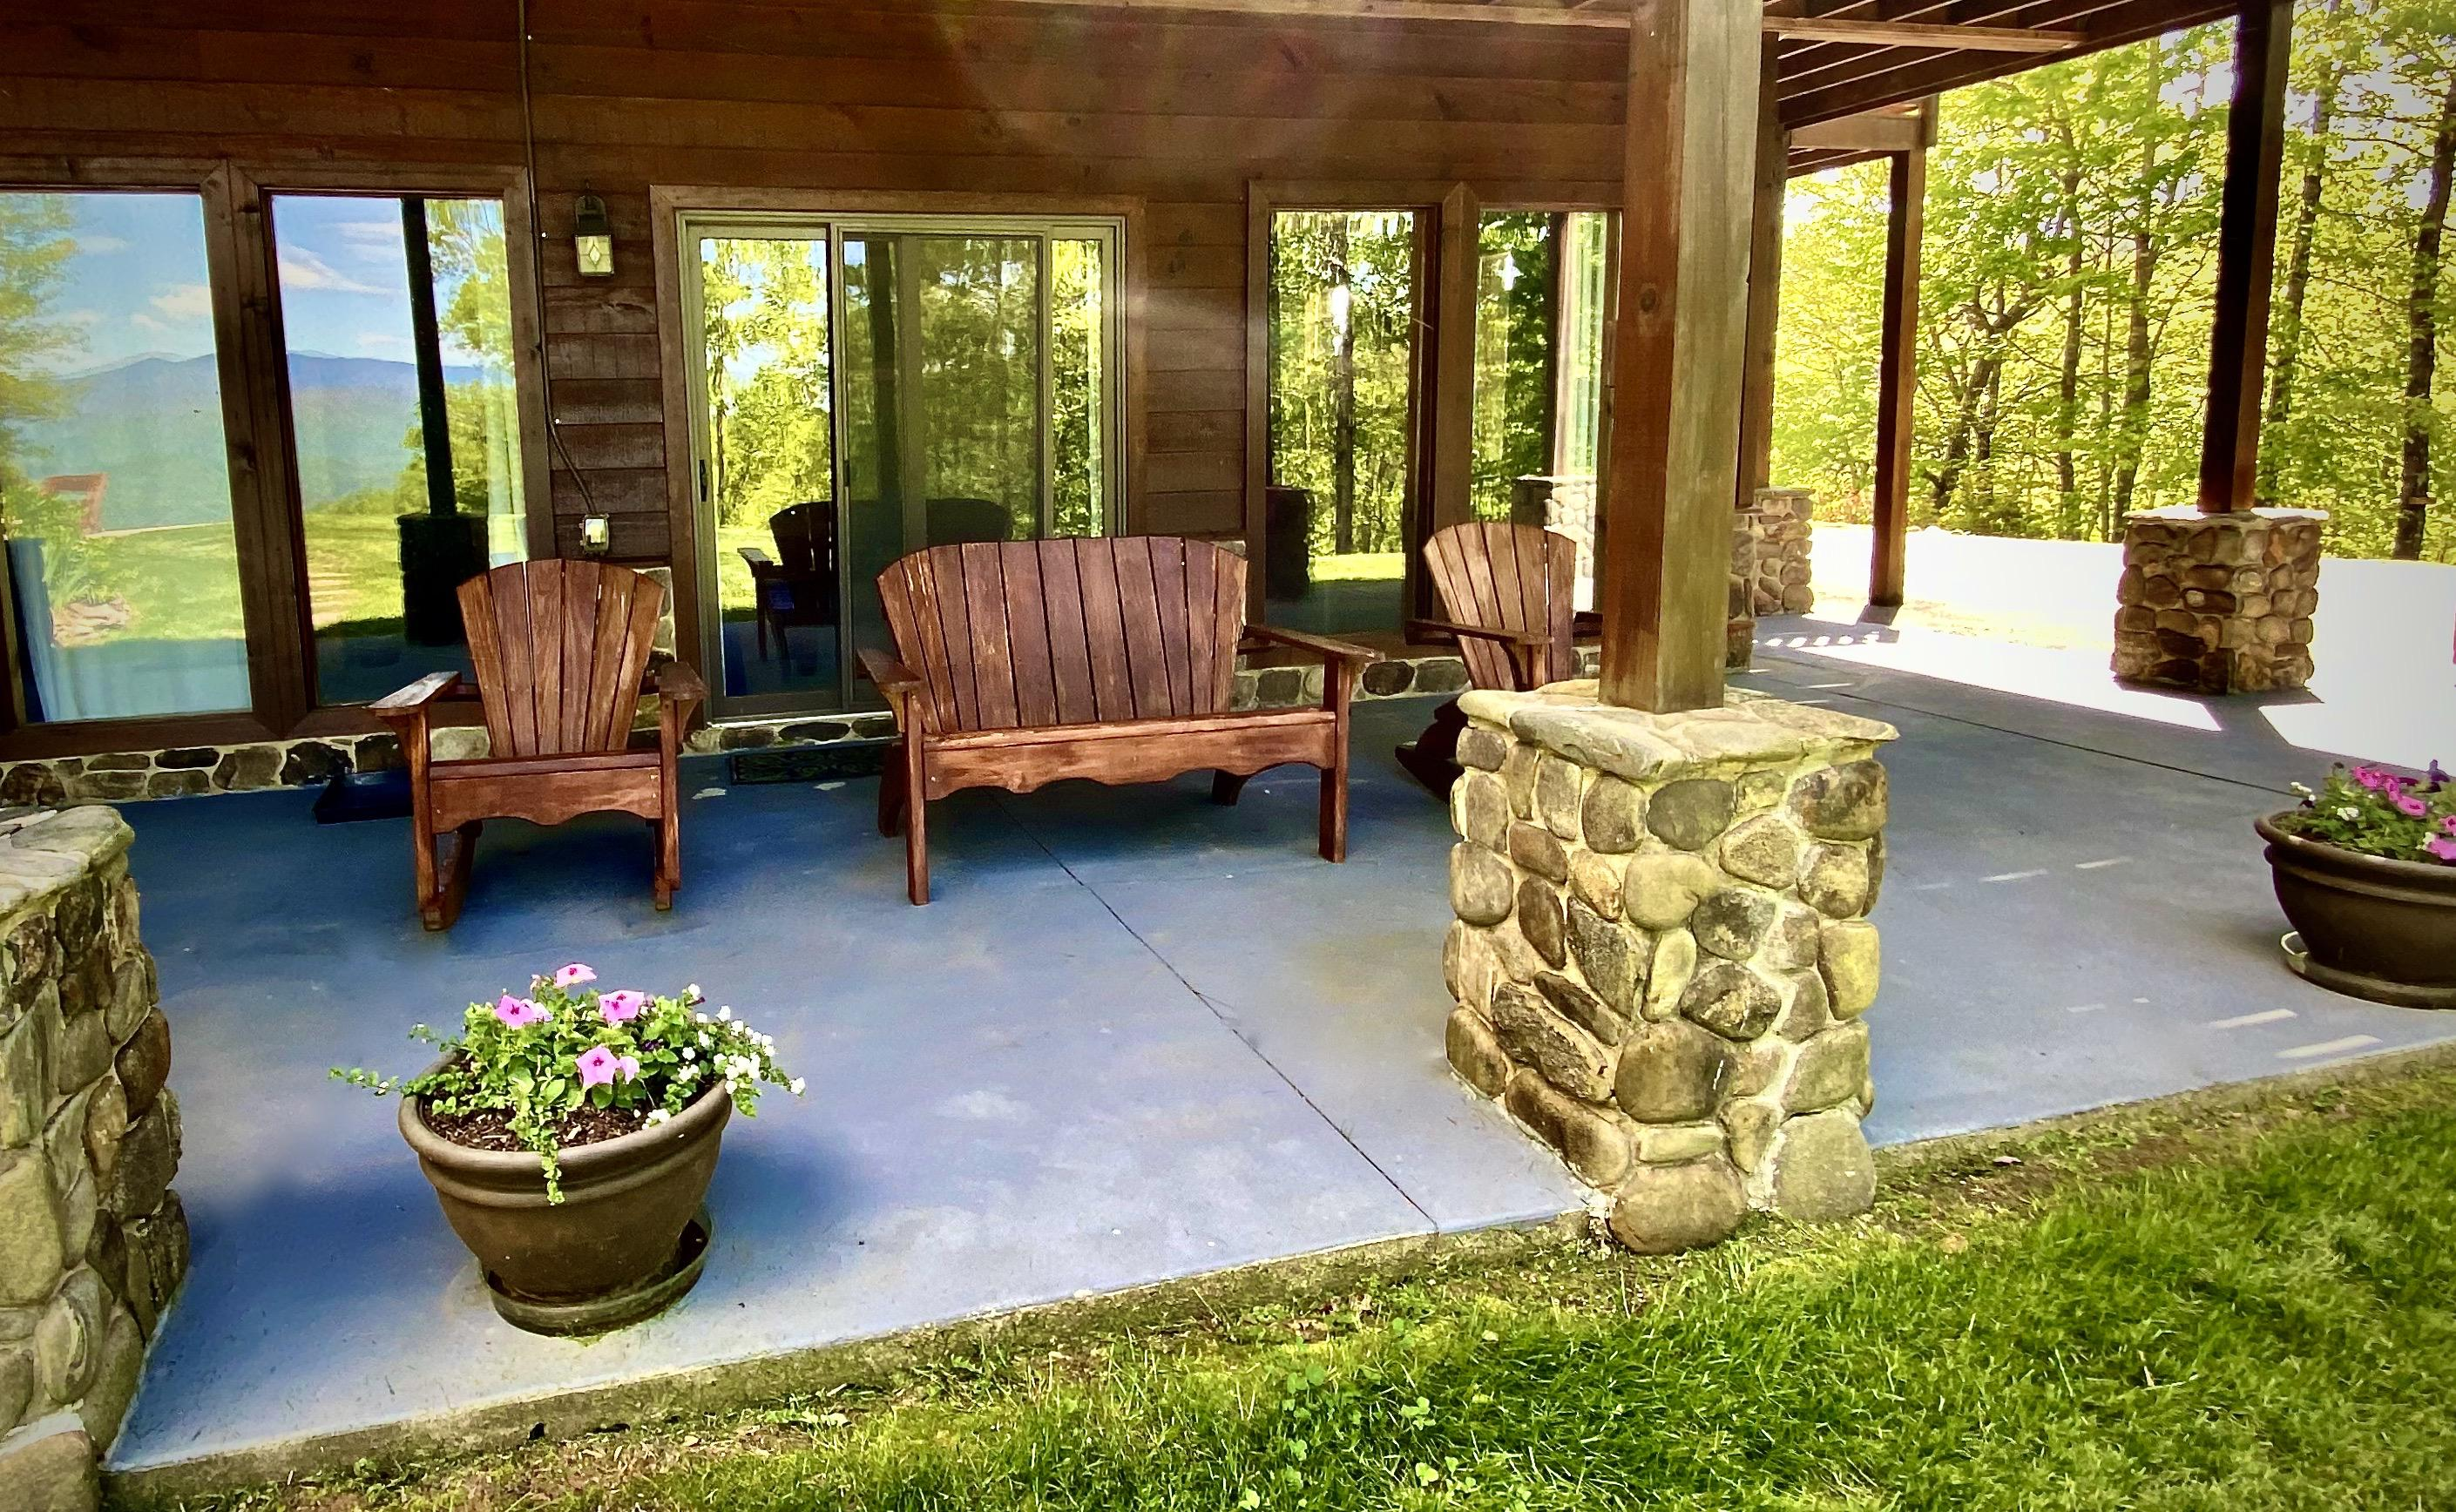 Covered Seating Area off the Master Suite